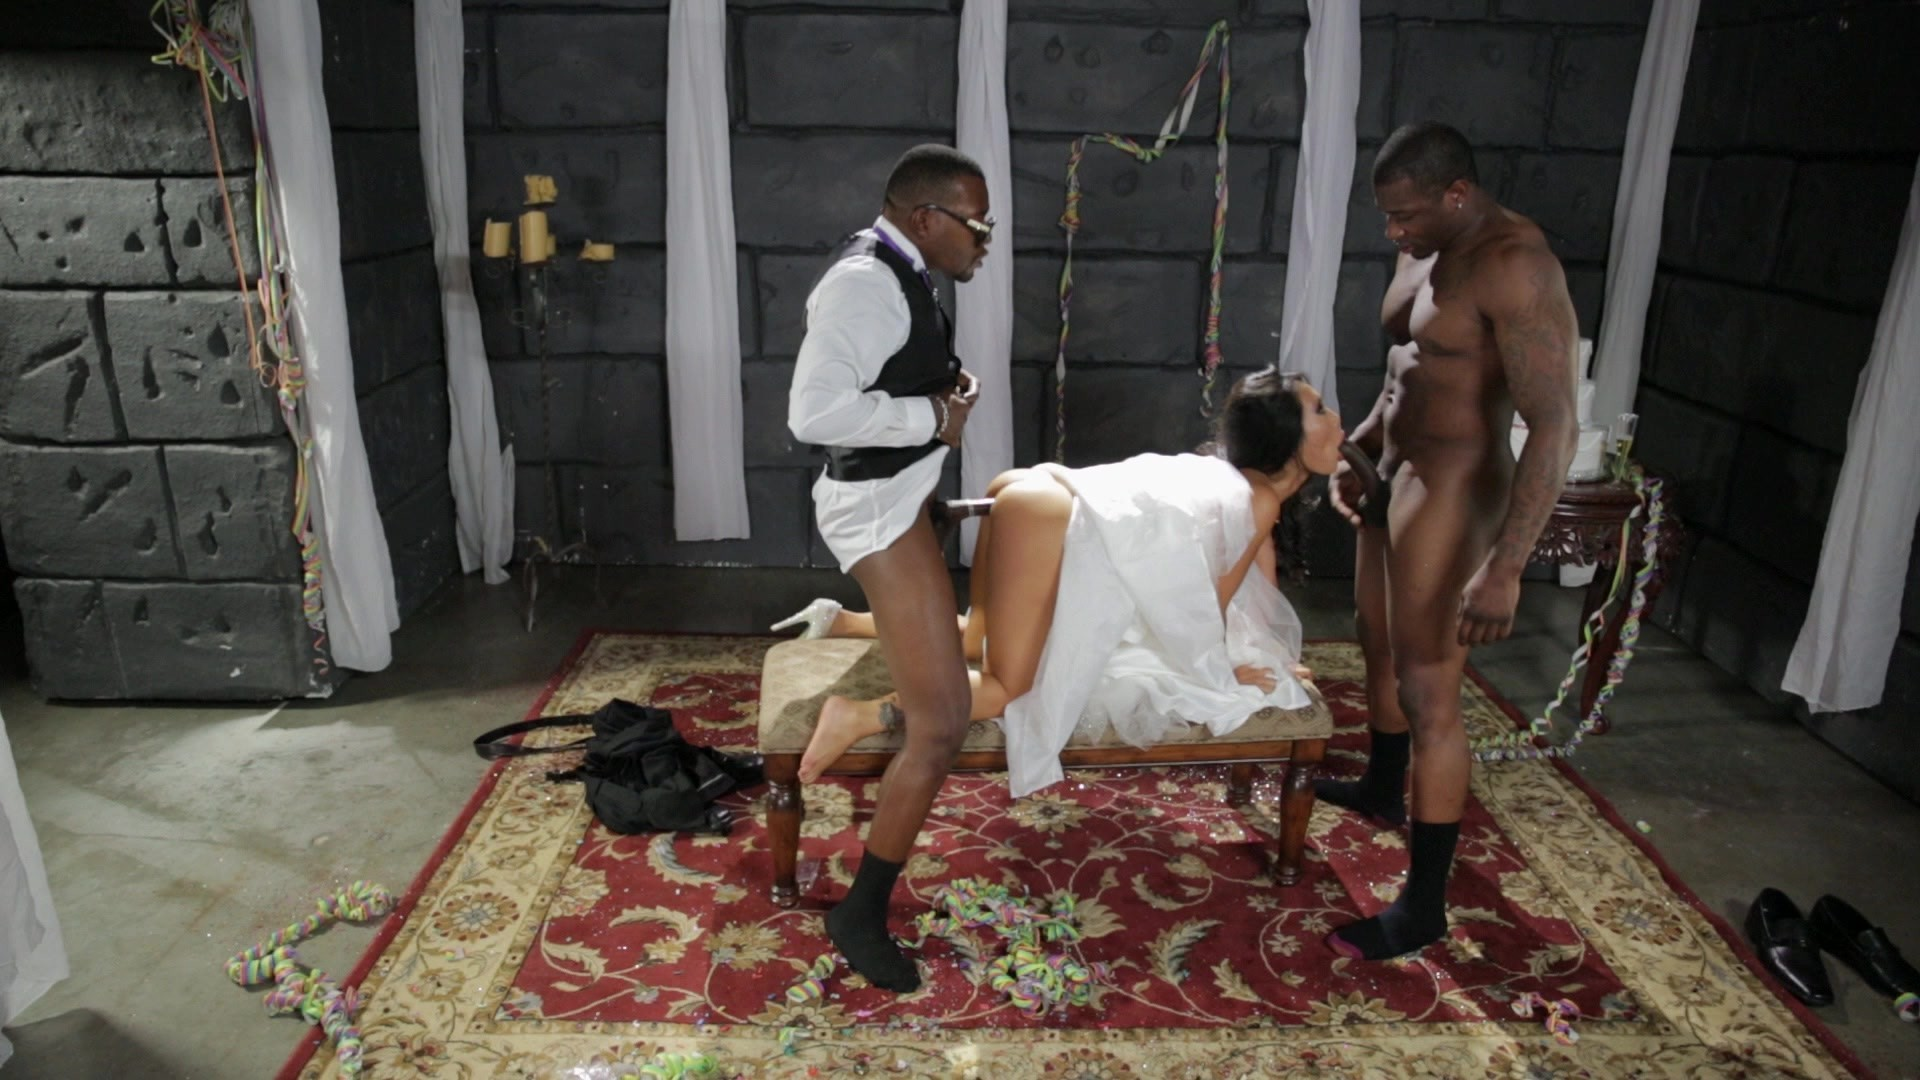 Scene with Asa Akira, Rob Piper XXX and Moe Johnson - image 9 out of 20